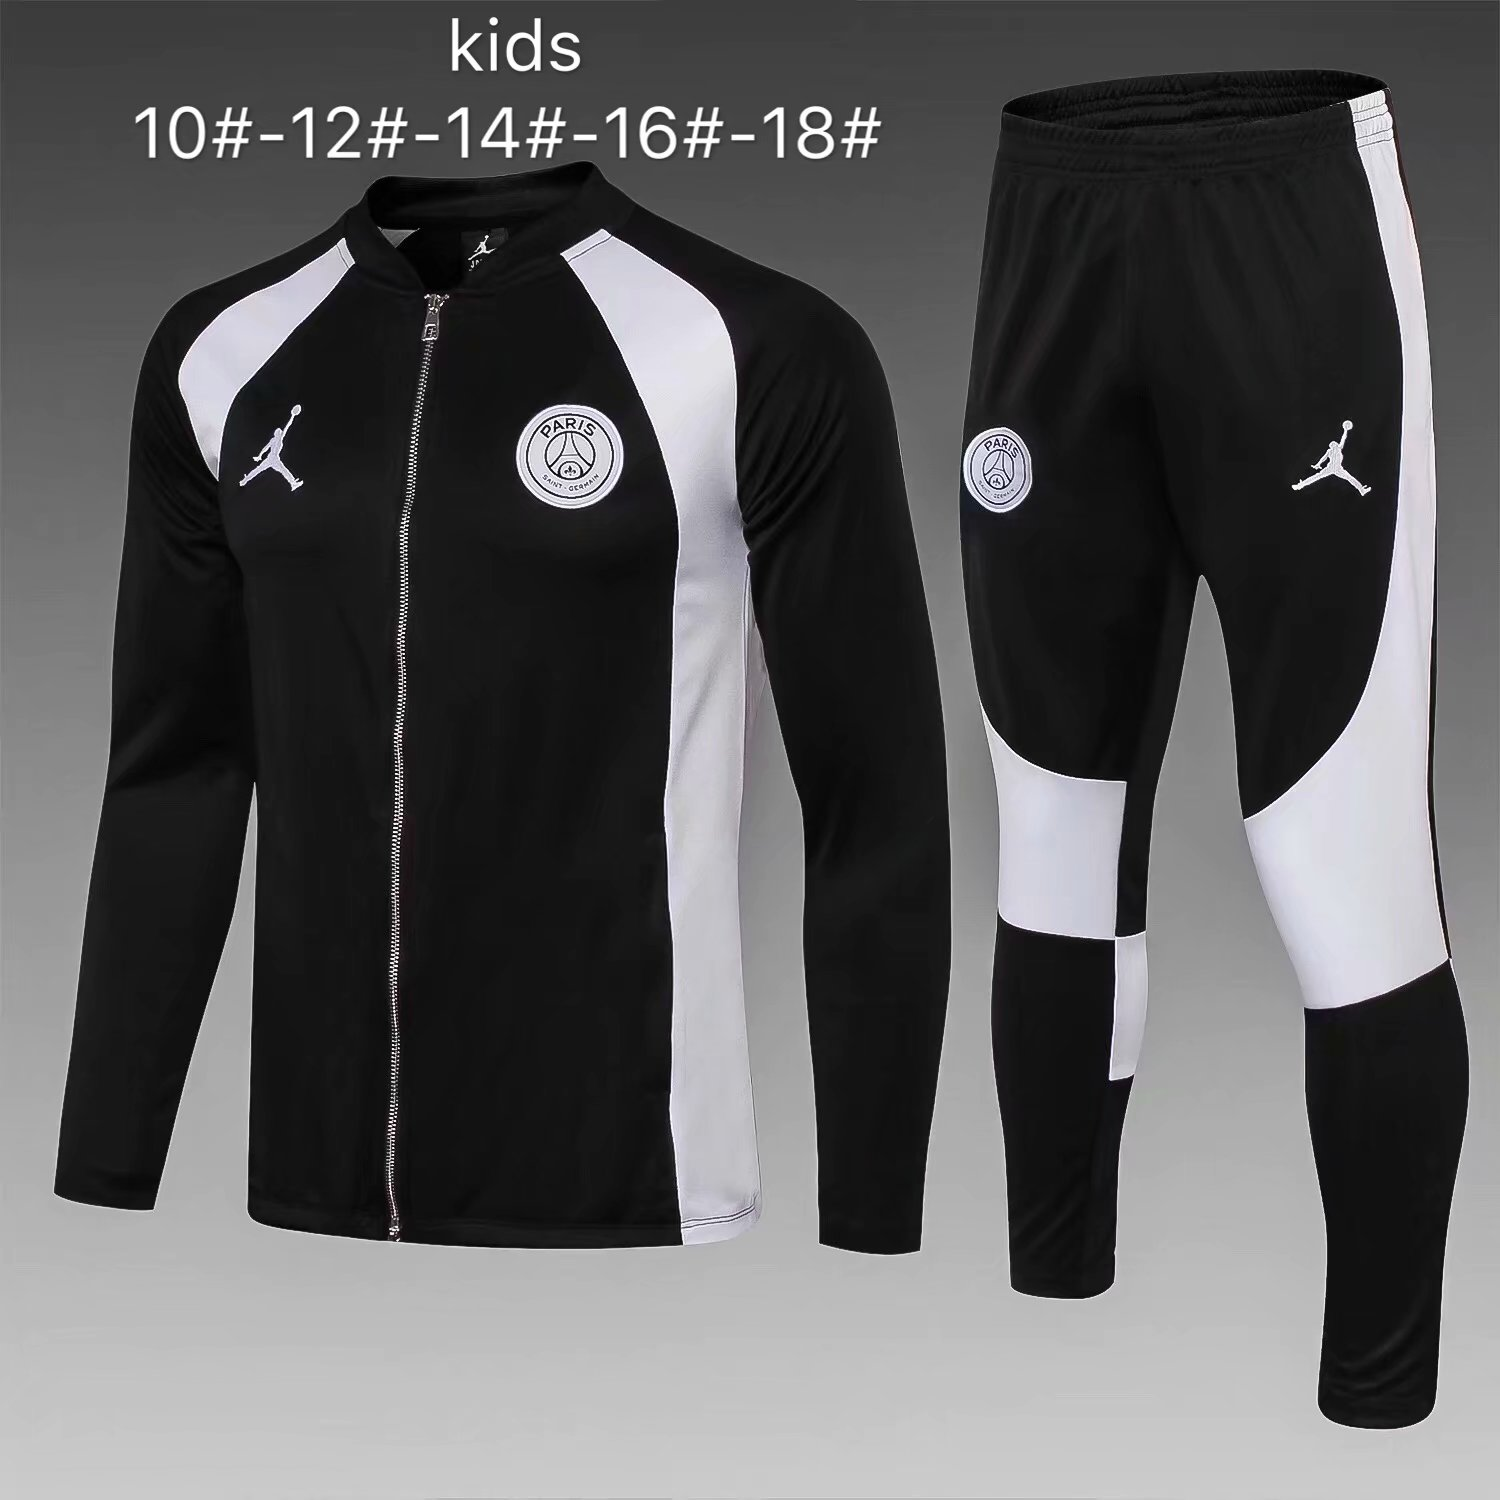 e4b4c7bbb93 US$ 32.8 - Kids PSG x Jordan Flight Knit Jacket + Pants Training Suit Black  2018/19 - www.fcsoccerworld.com